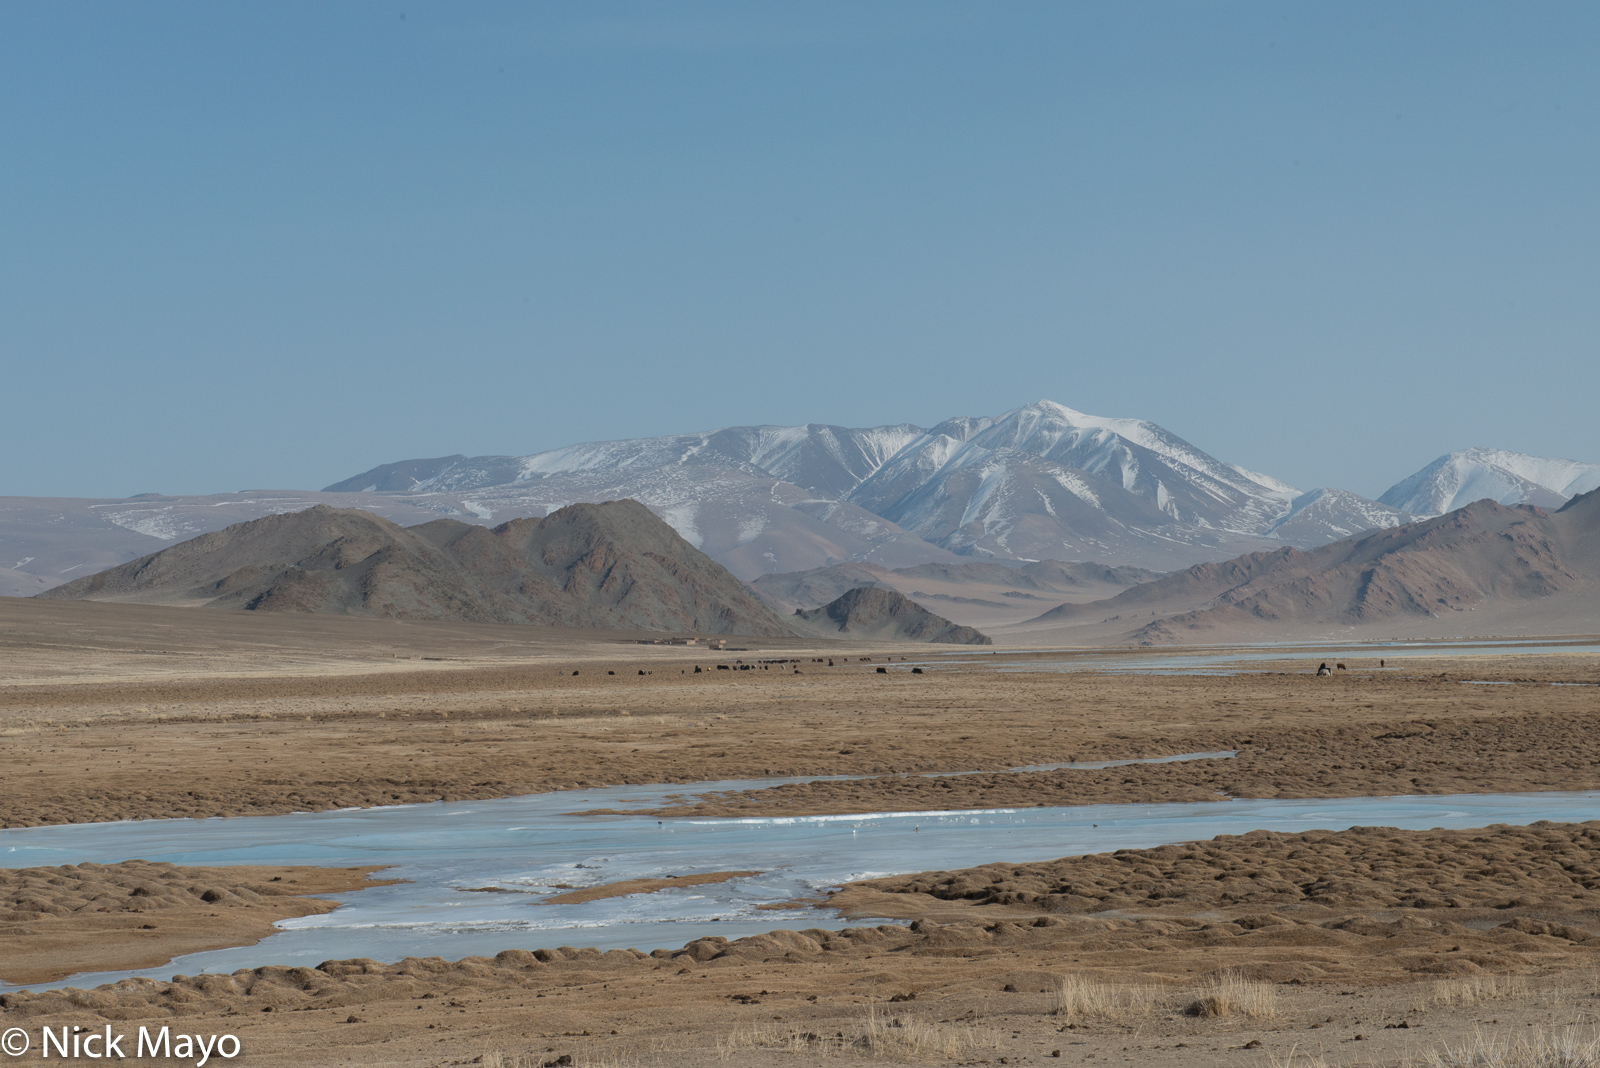 Bayan-Ölgii, Mongolia, photo